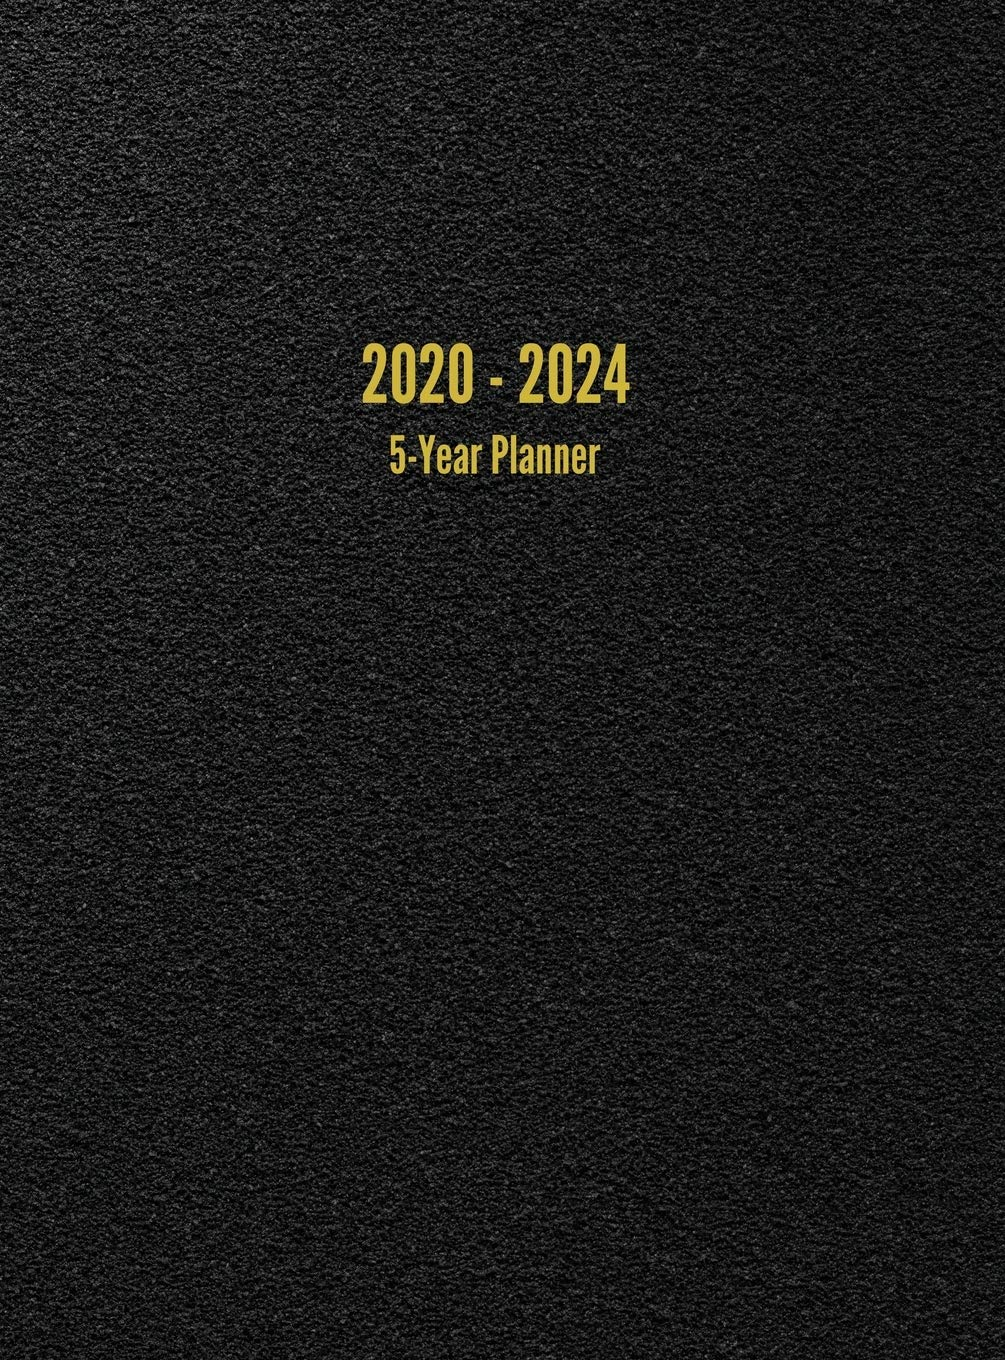 2020 – 2024 5-Year Planner: 60-Month Calendar (Black)